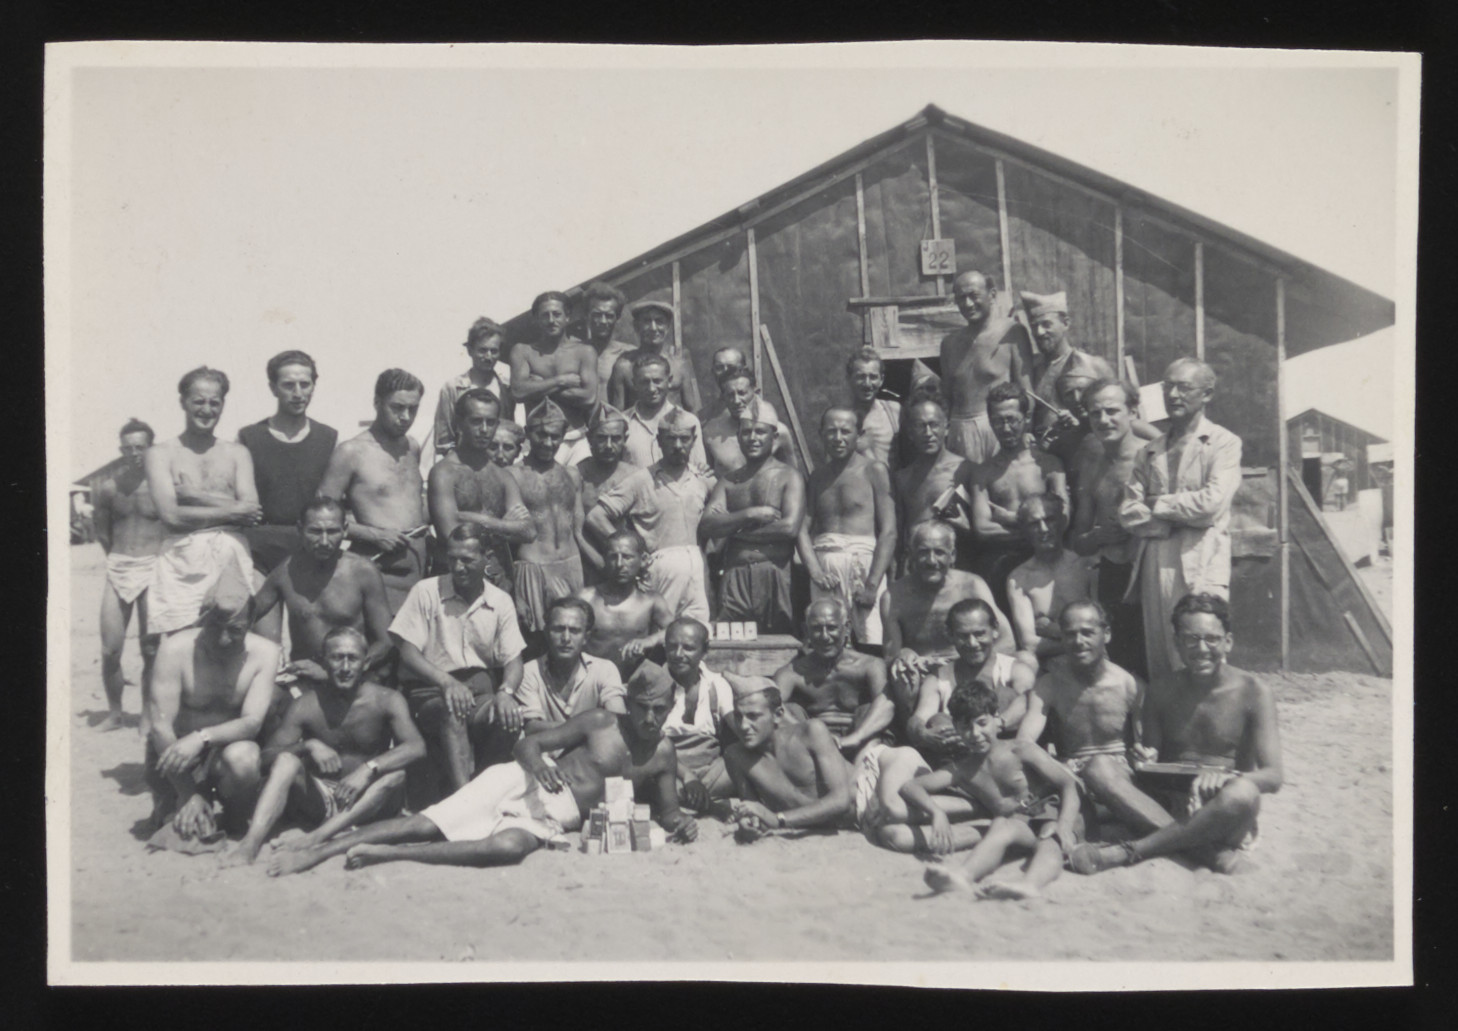 Group portrait of prisoners in St. Cyprien  internment camp posing in front of a barracks.  Those pictured include Ludwig Cohn (donor's brother) and Fritz Tockus (donor's brother-in-law).